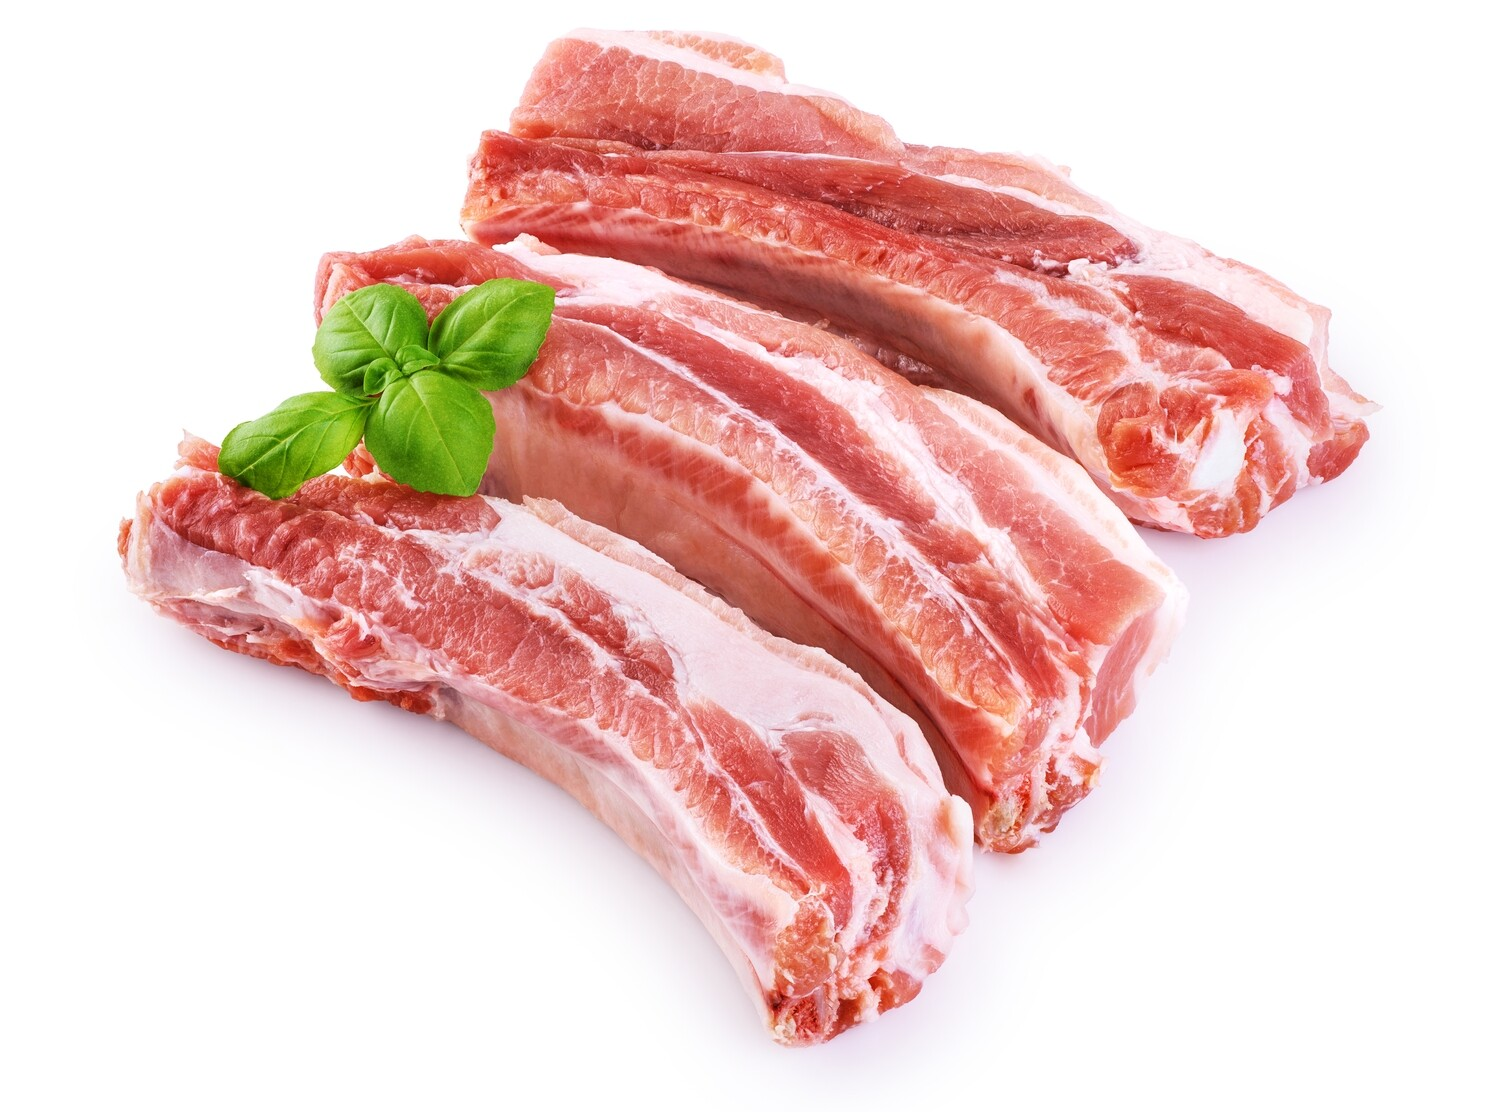 Pan Royal Pork Riblet Cut